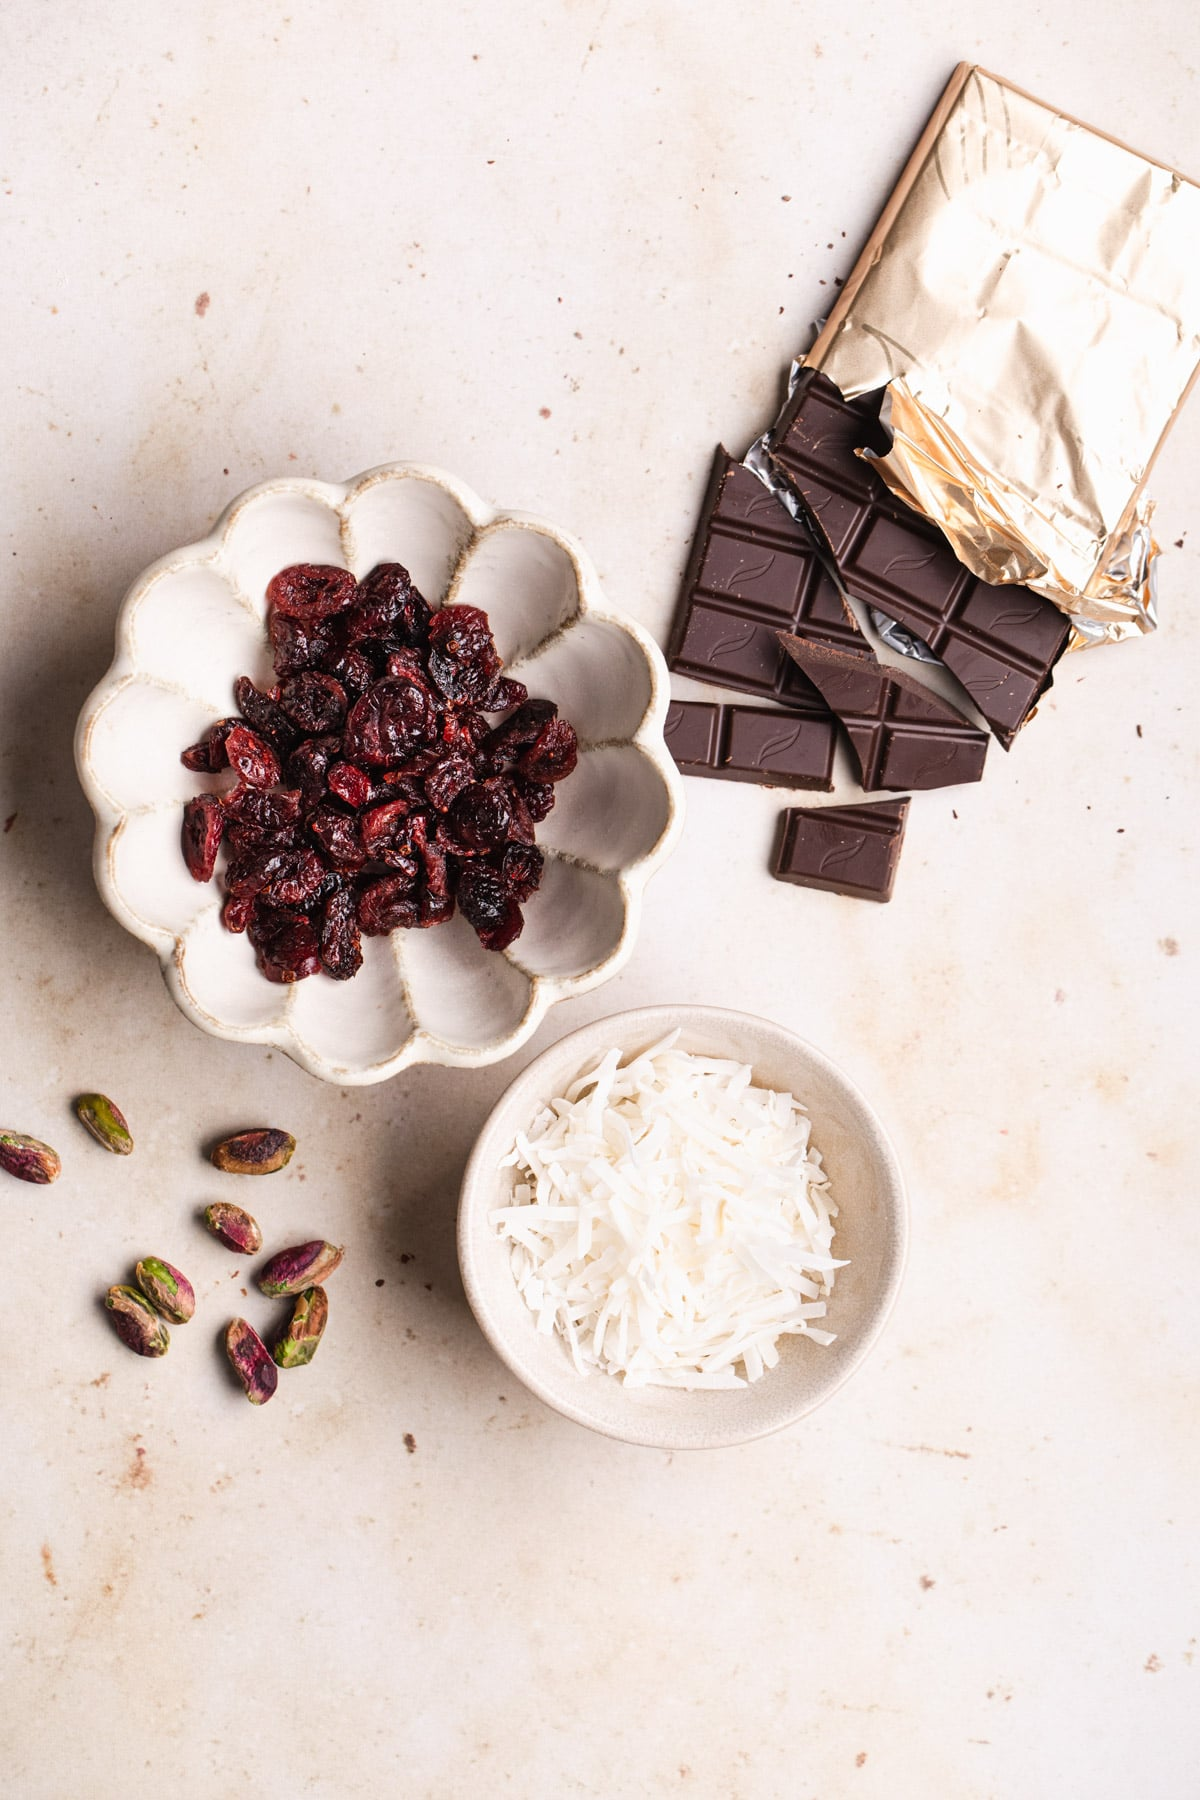 ingredients for dark chocolate rocky road